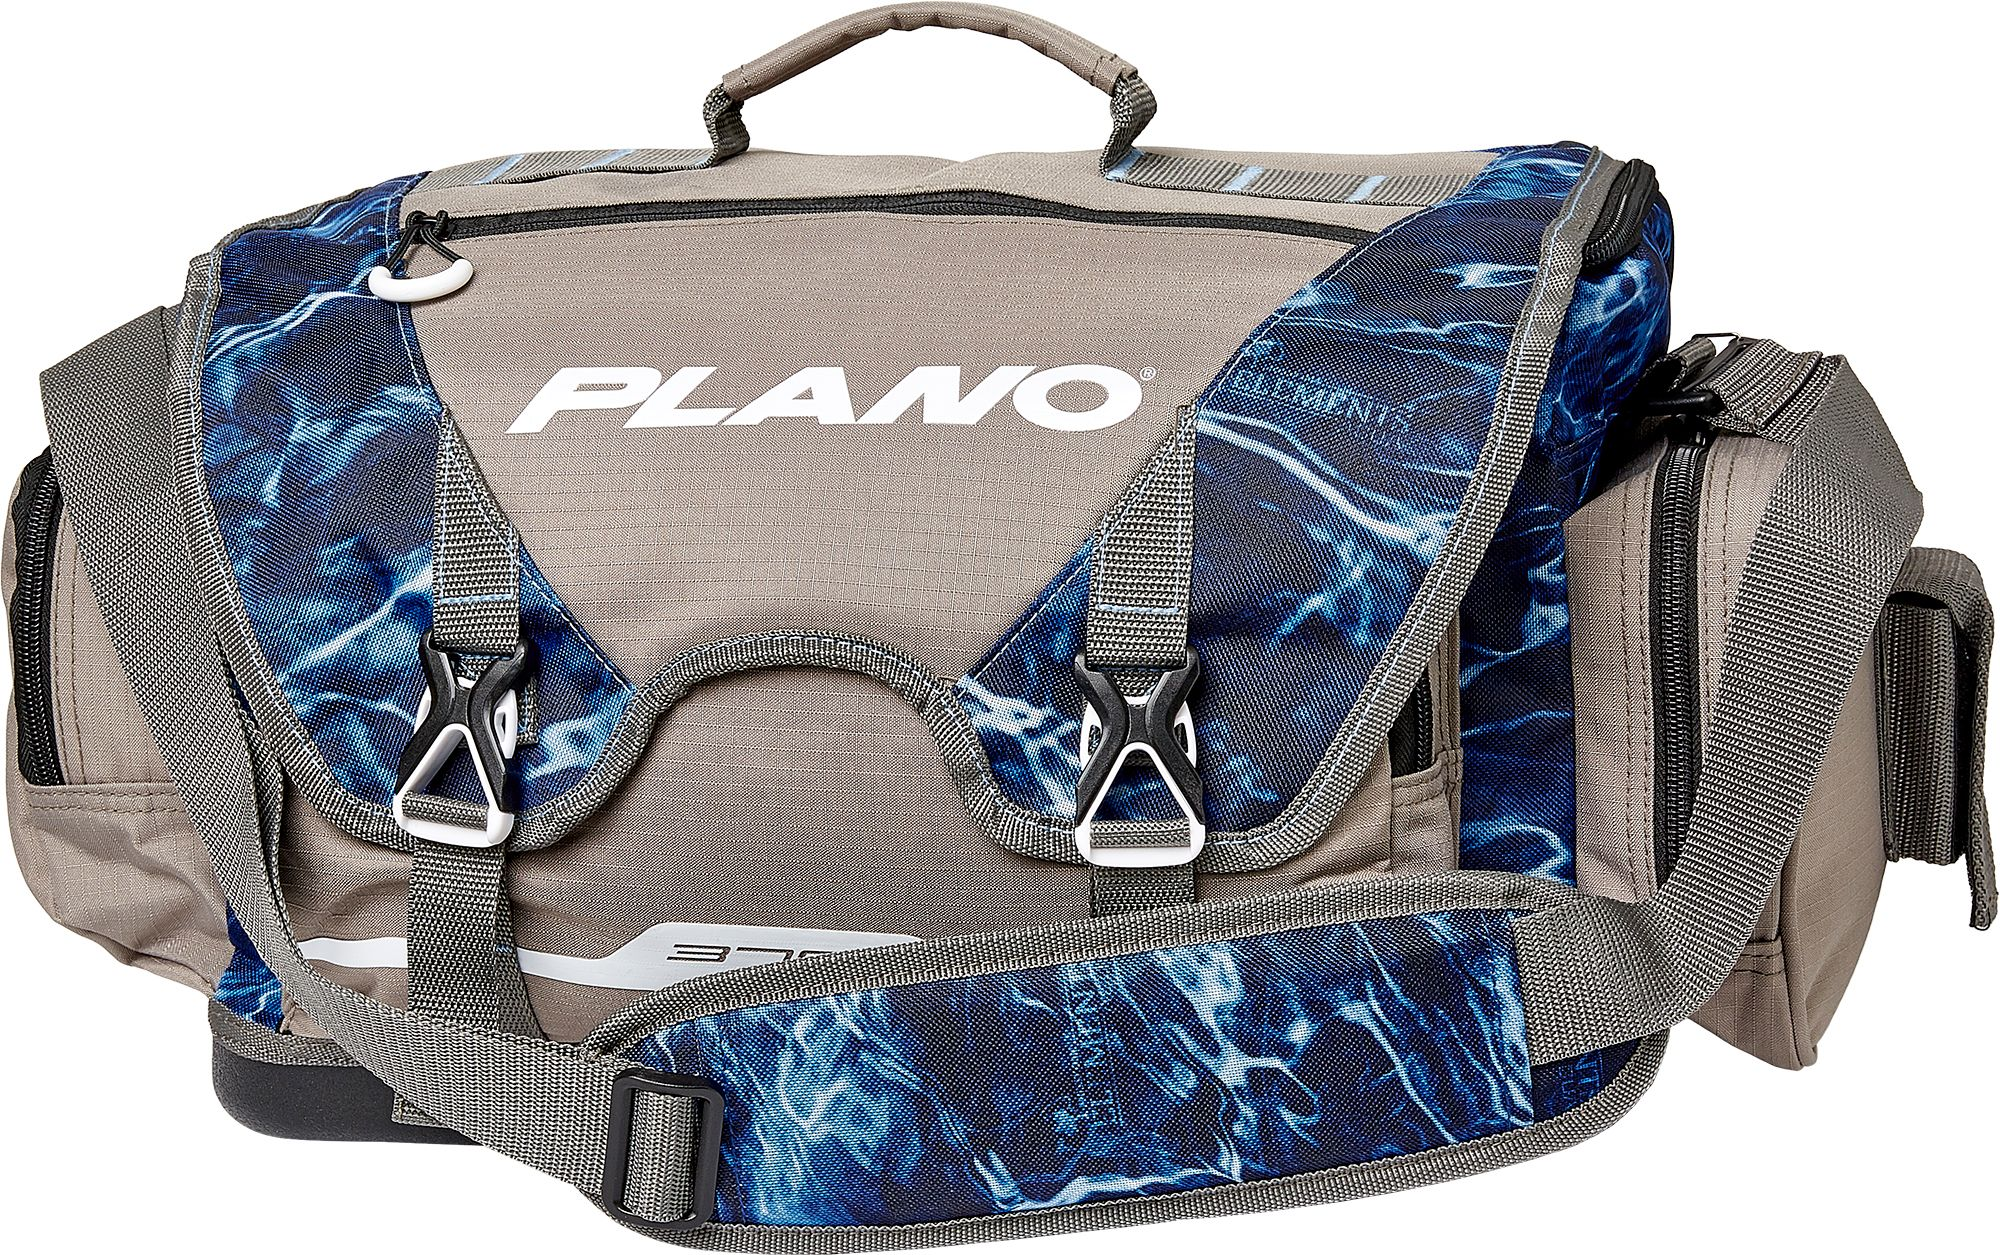 Plano B-Series 3700 Tackle Bag, Size: One size